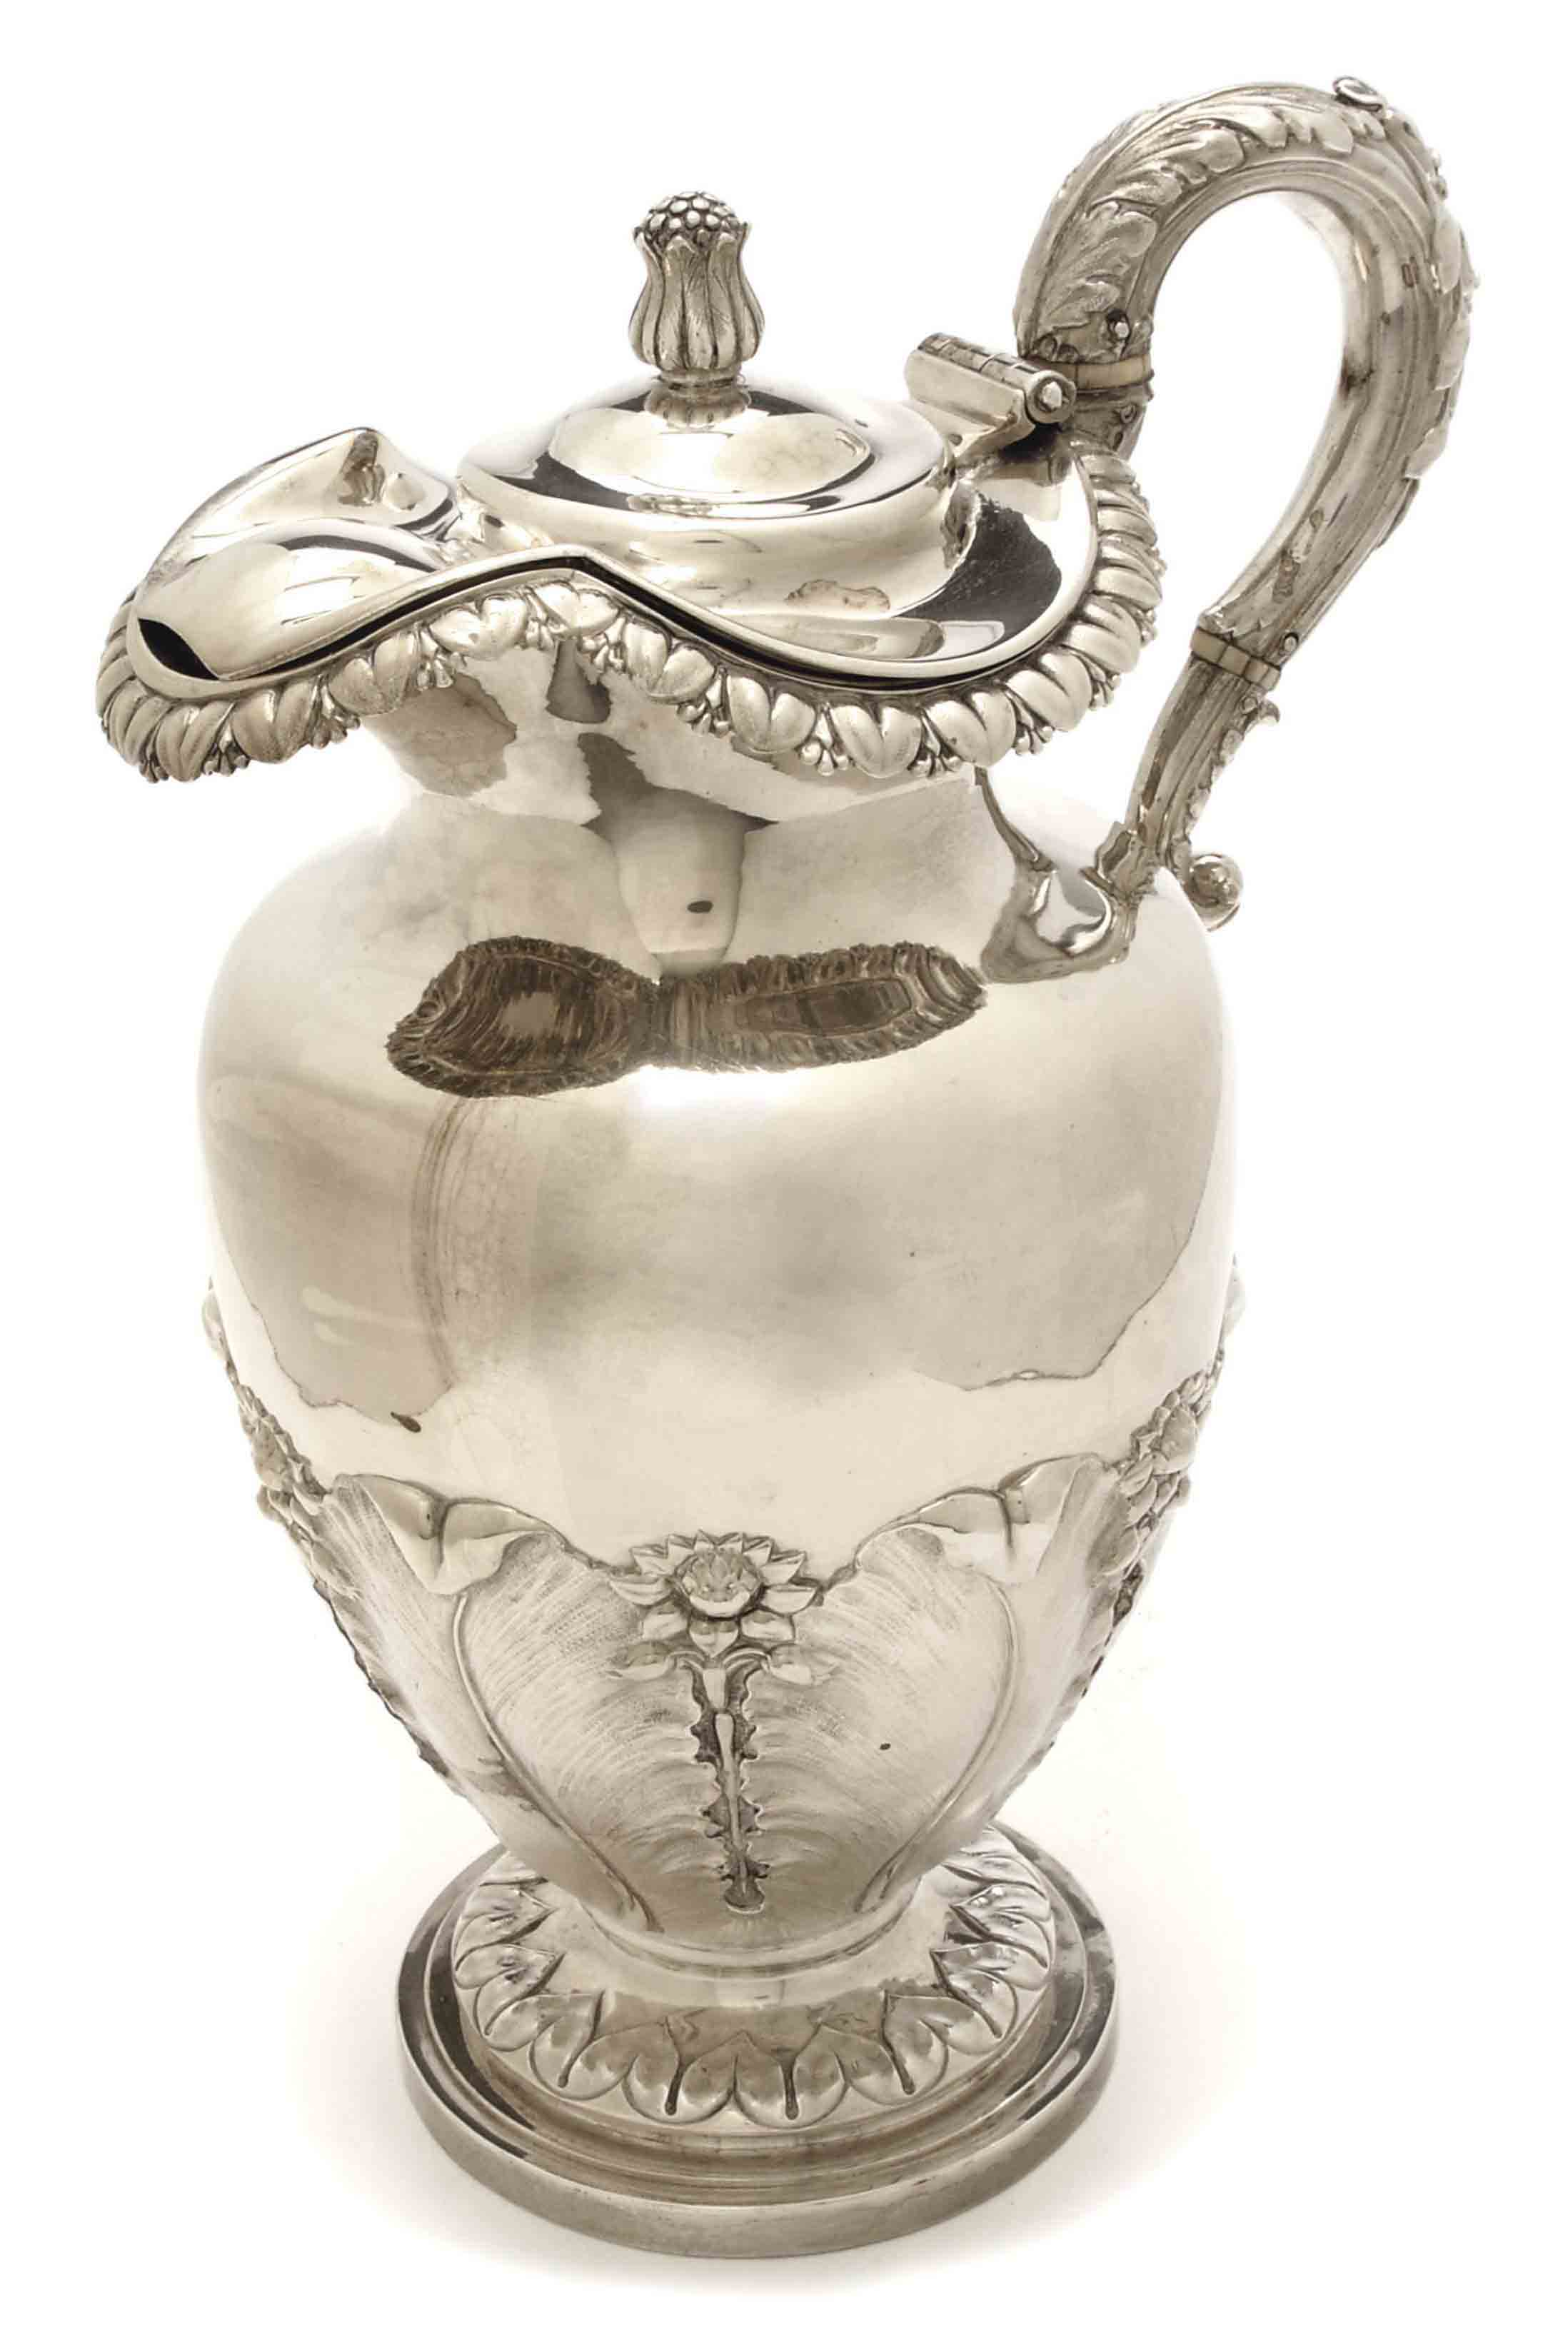 A GEORGE IV CLARET JUG WITH HINGED COVER,